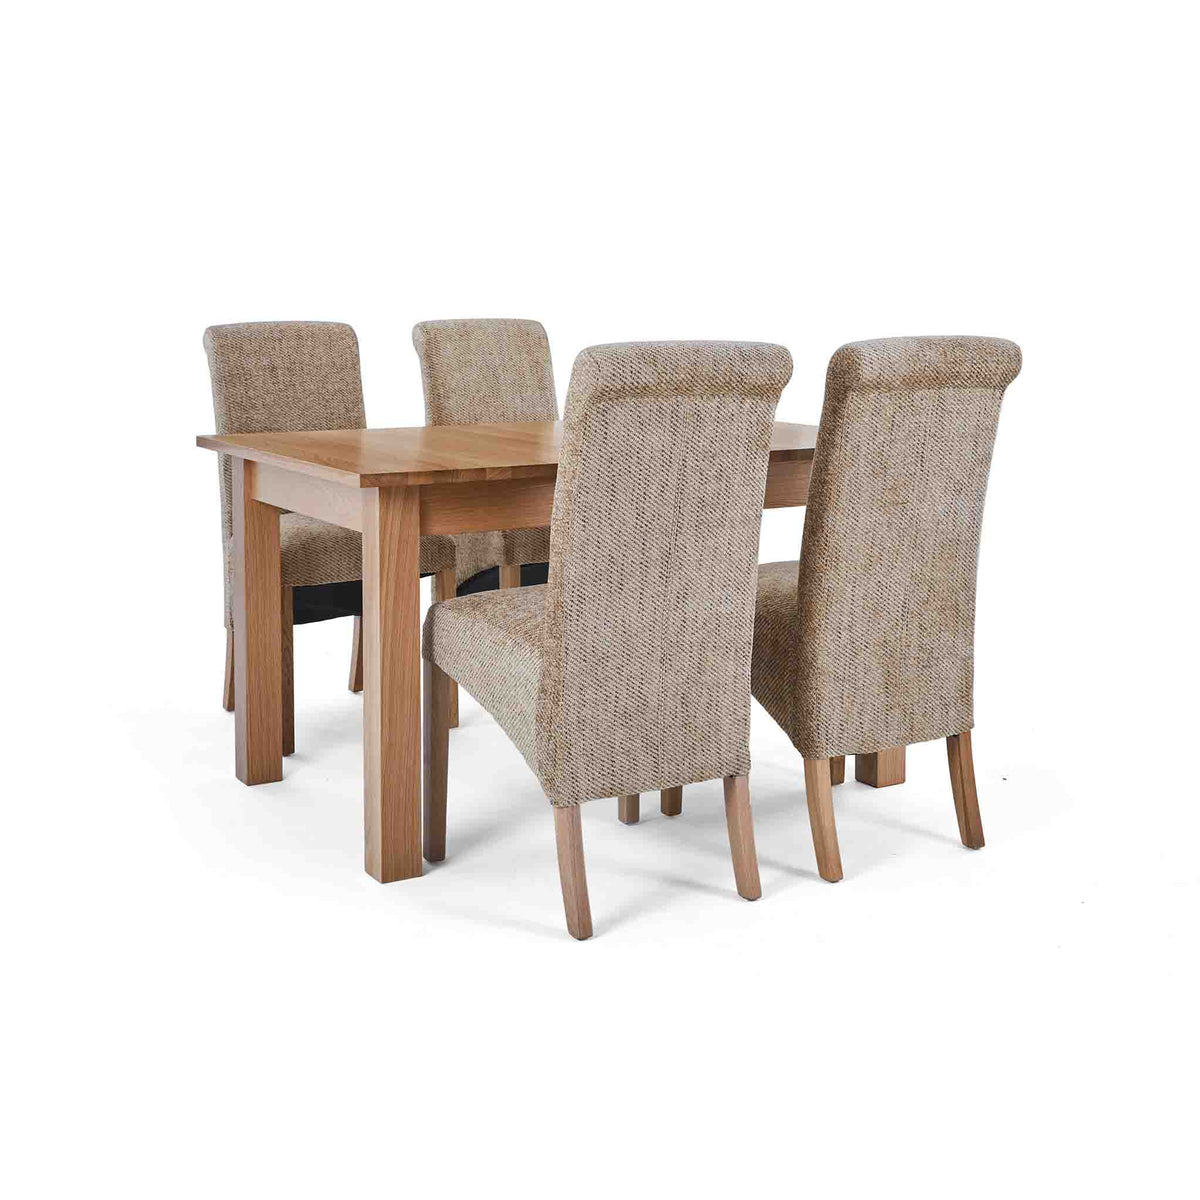 4 Wheat Bibury Chairs with the closed Falmouth Oak Large Extending Dining Table